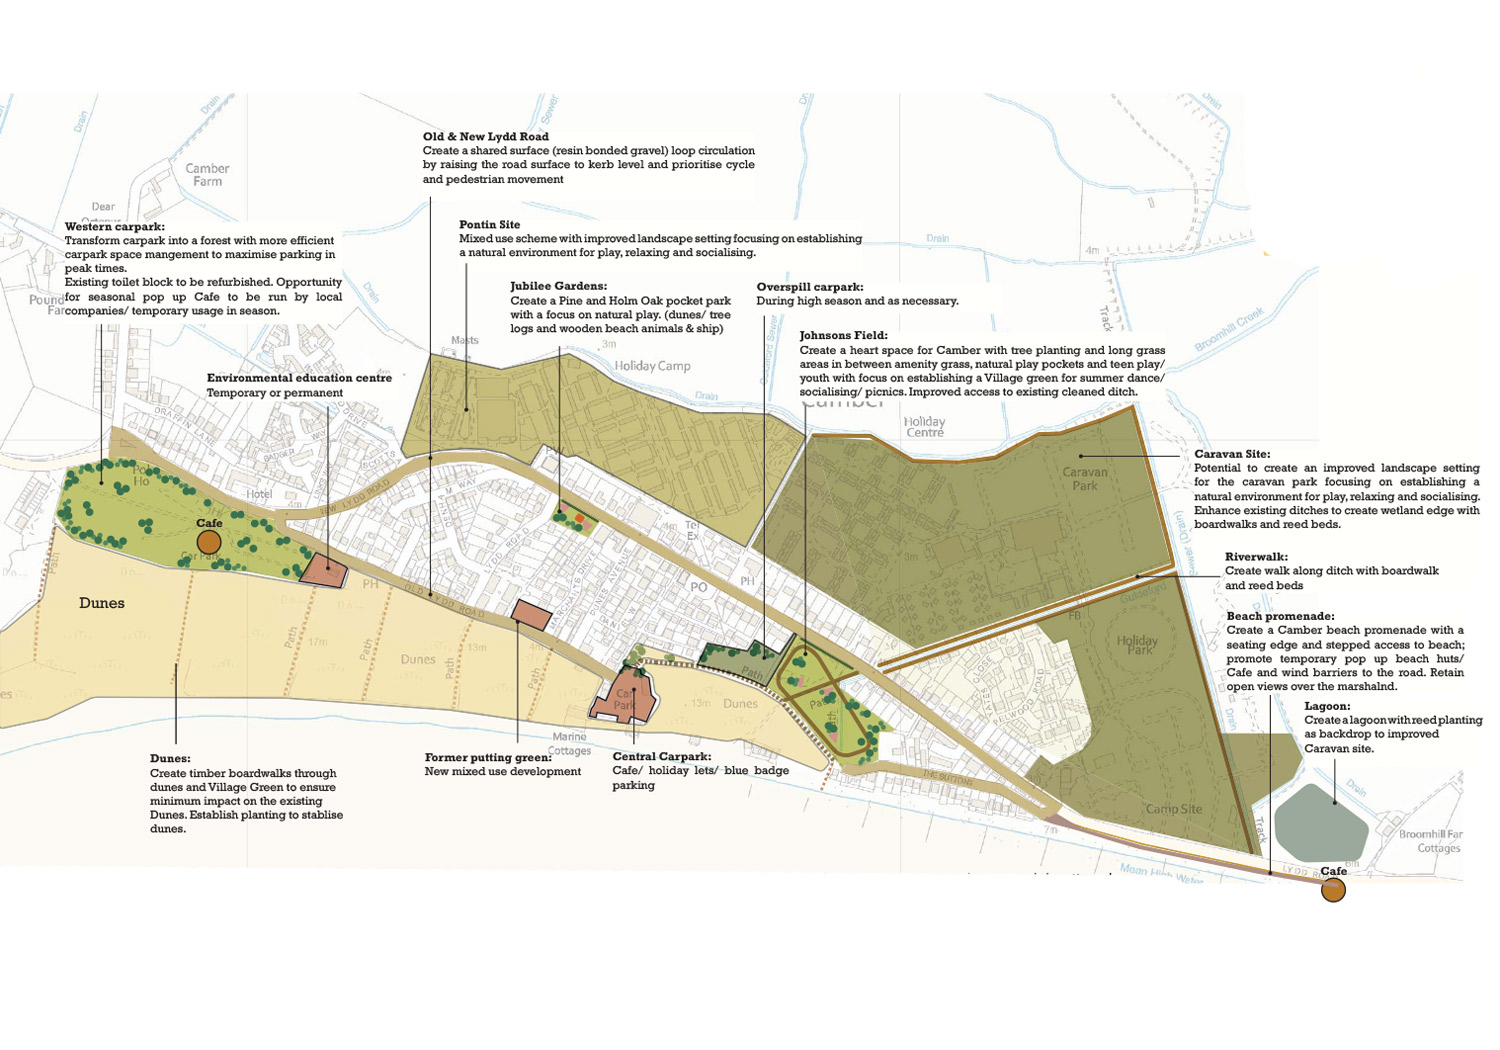 Projects-RecreationTourism-CamberSands_Strategy1-1500x1050